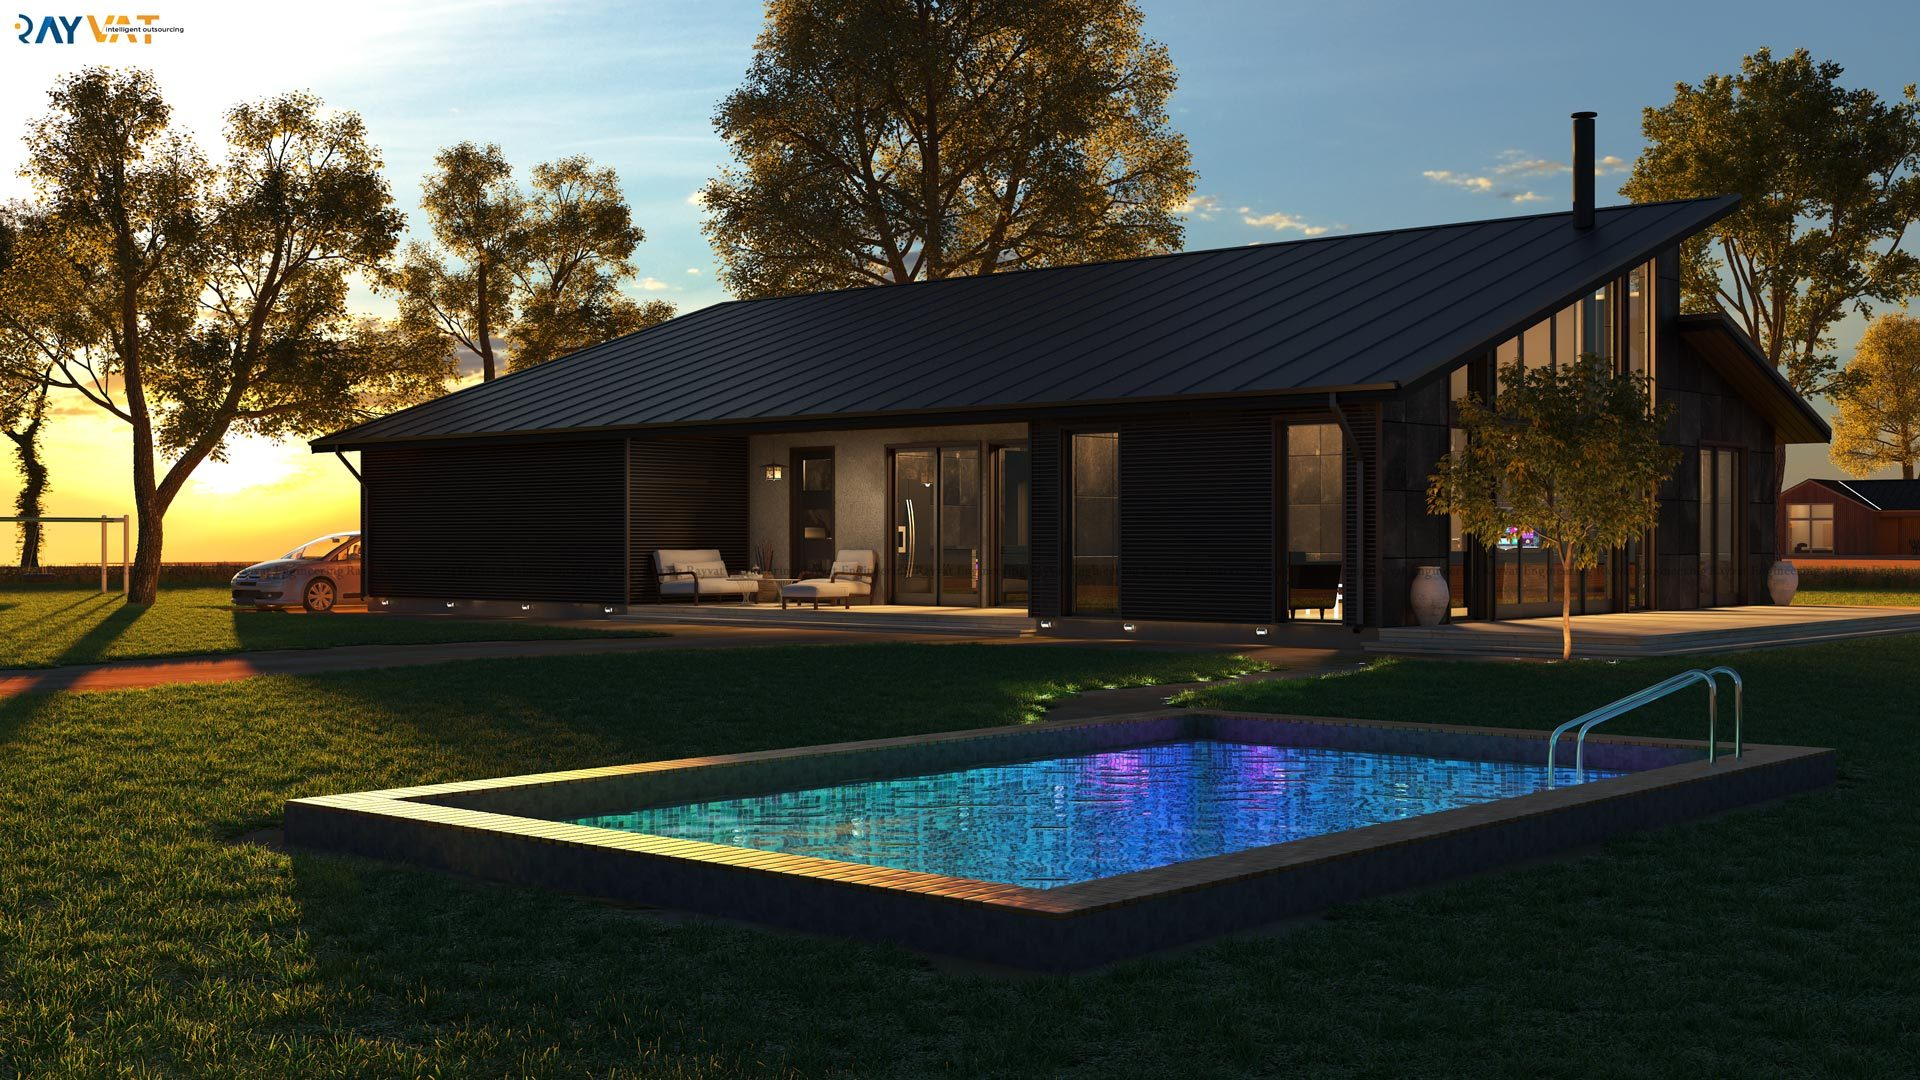 3d Exterior Home Design Chicago By Rayvatrendering 3d Studio Max Landscape